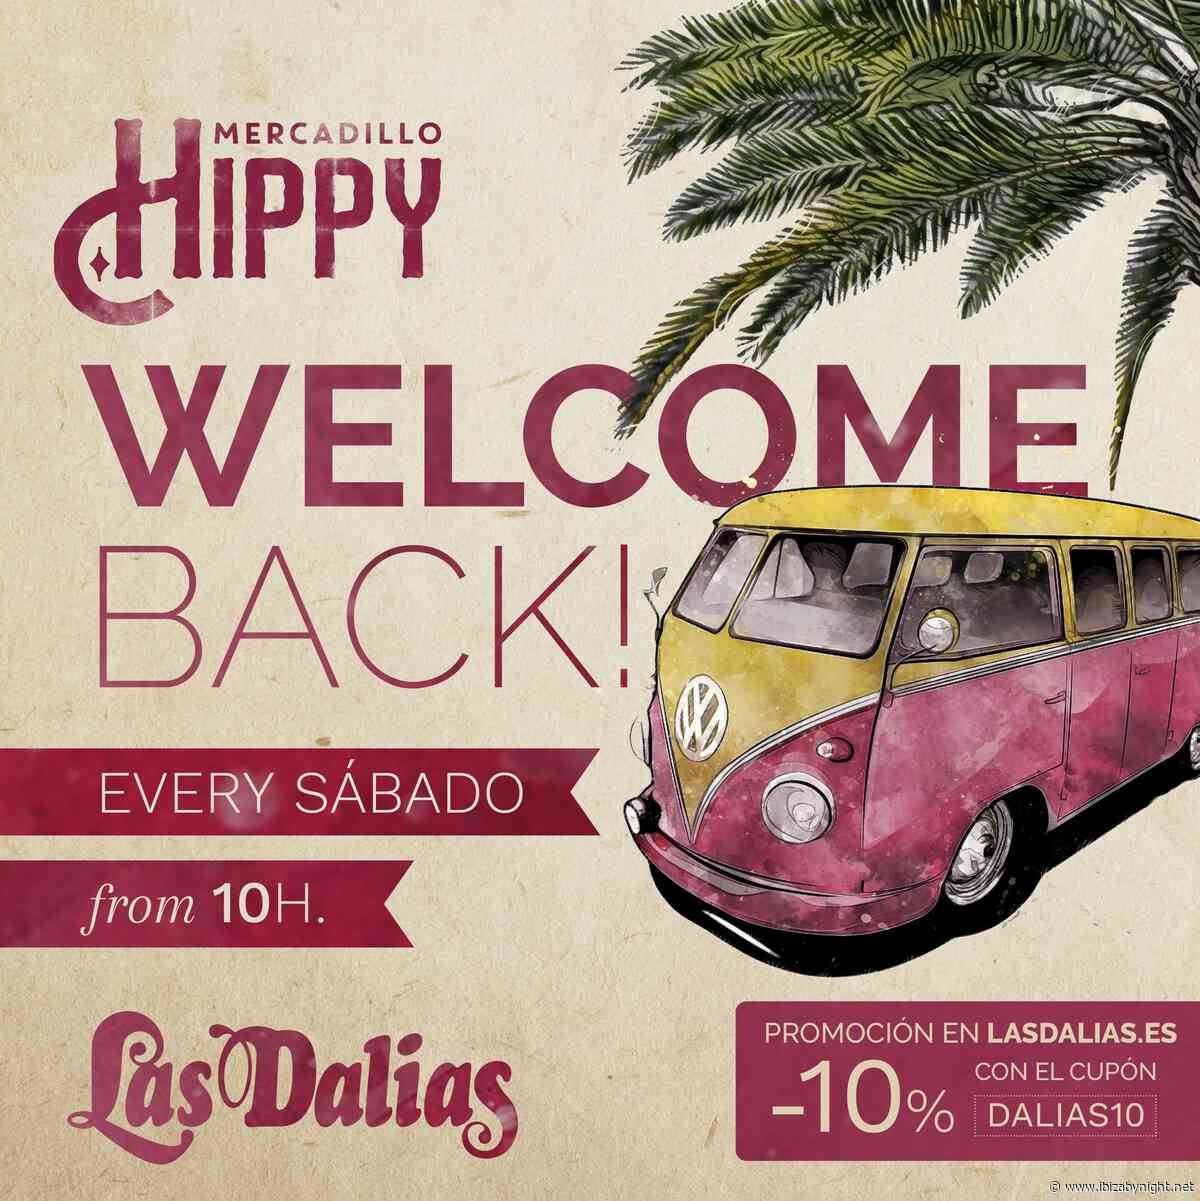 Mercadillo Hippy at Las Dalias Ibiza is back!